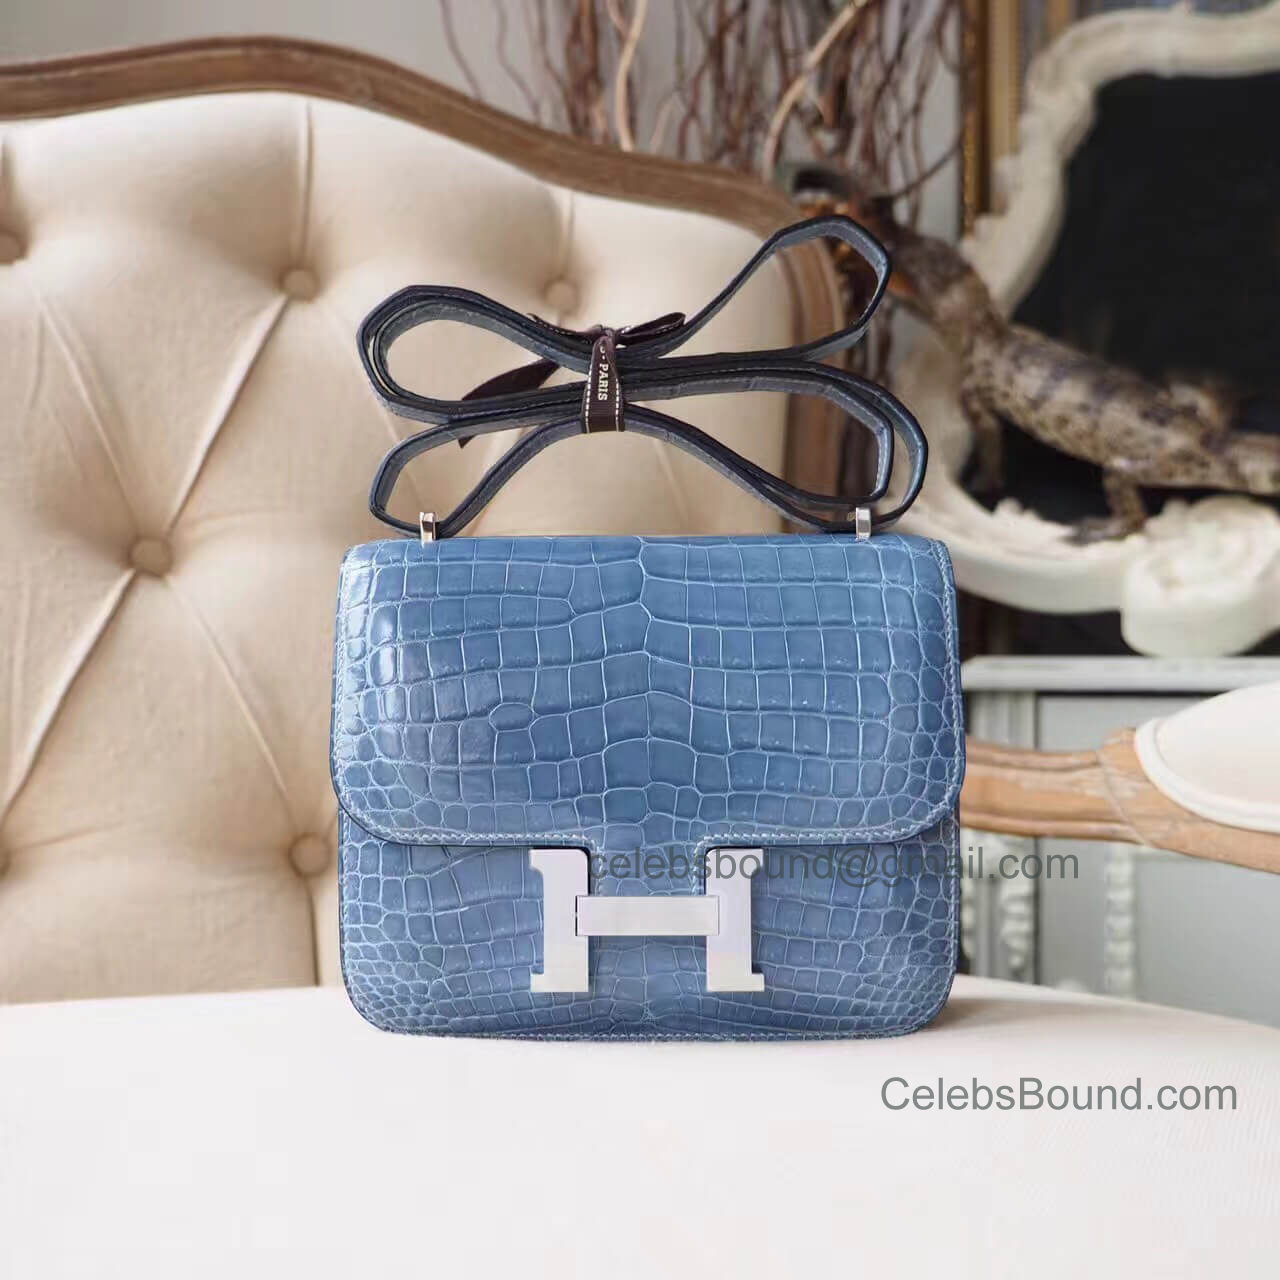 Replica Hermes Mini Constance 18 Bag in n7 Blue Tampete Shiny Nile Croc PHW